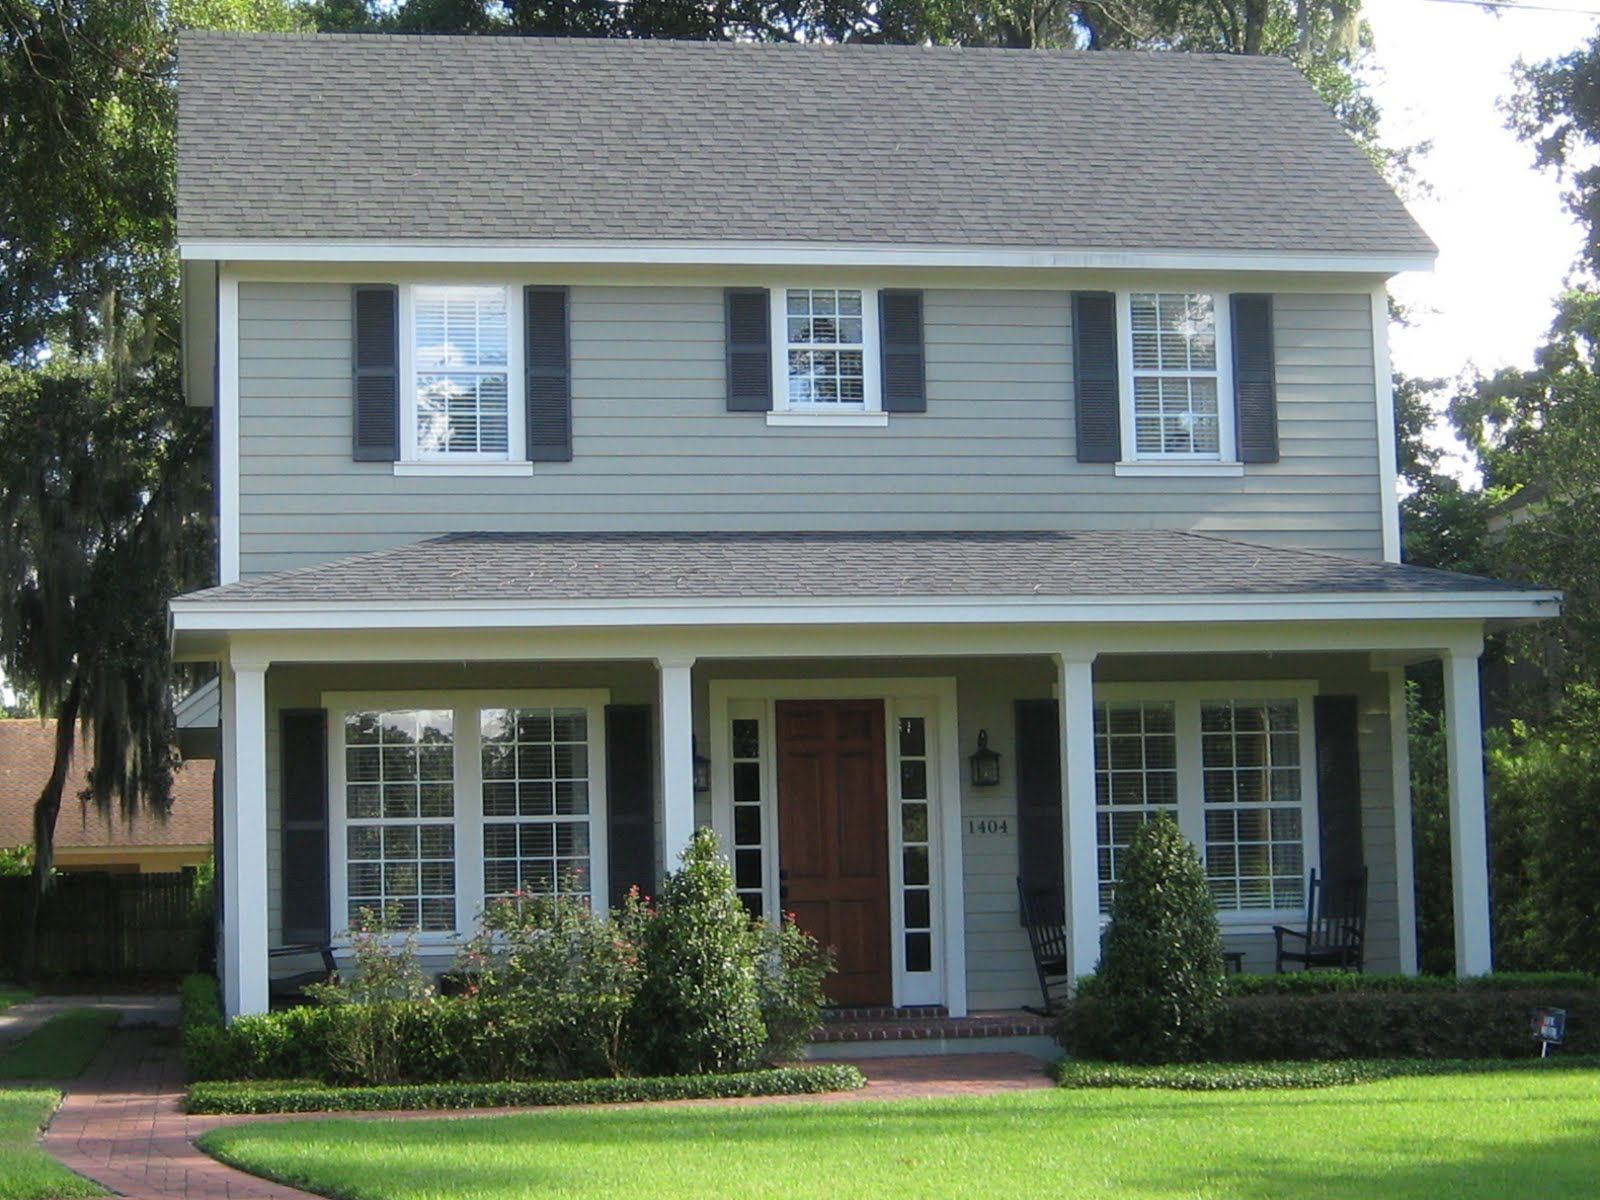 Ranch style home exterior colors stunning cool paint color ideas for homes design also jane liebman janeliebman on pinterest rh